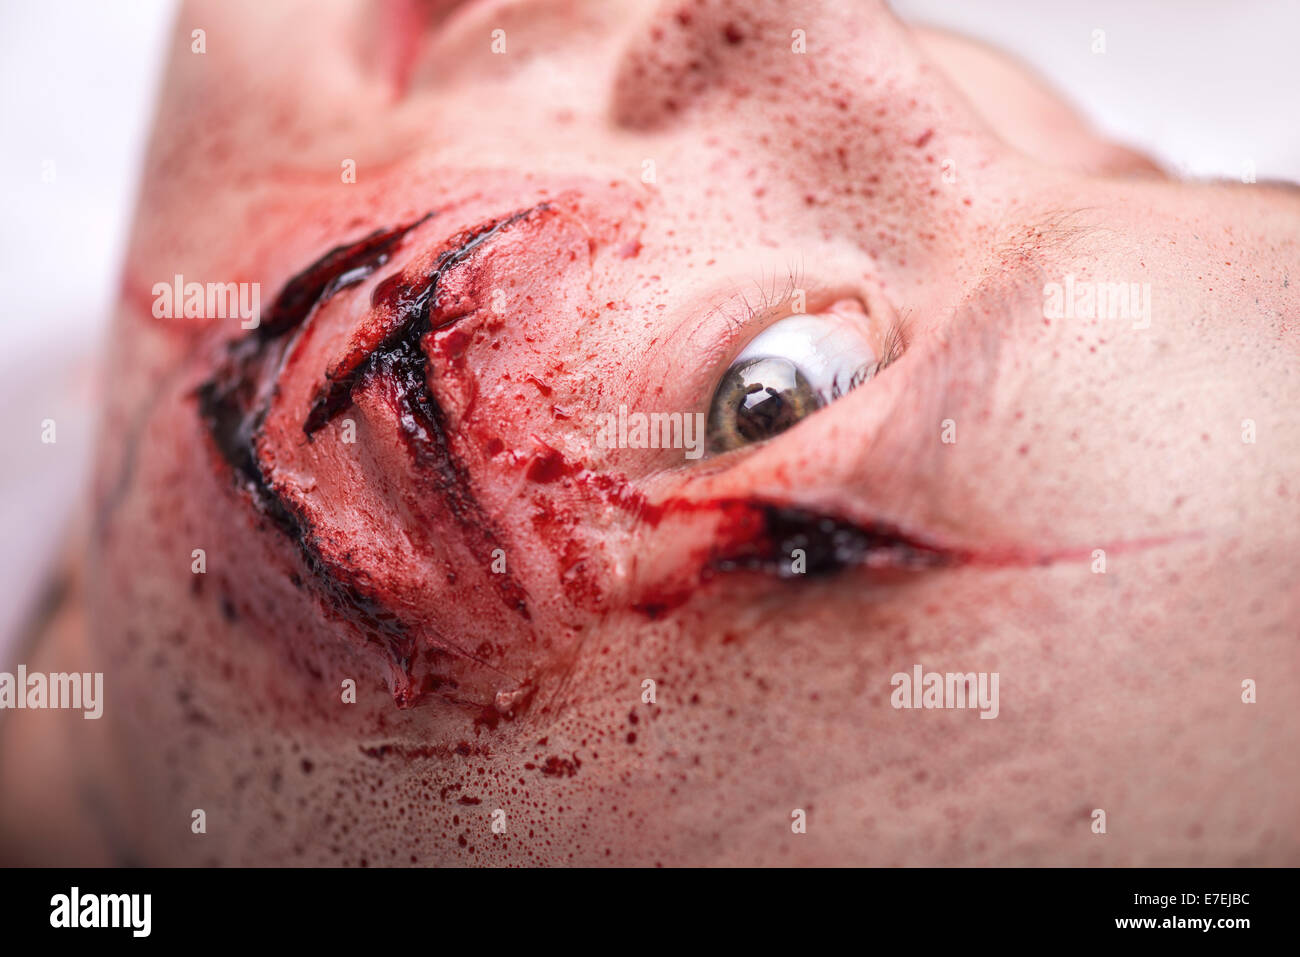 Woman with the gash prepared for operation - Stock Image